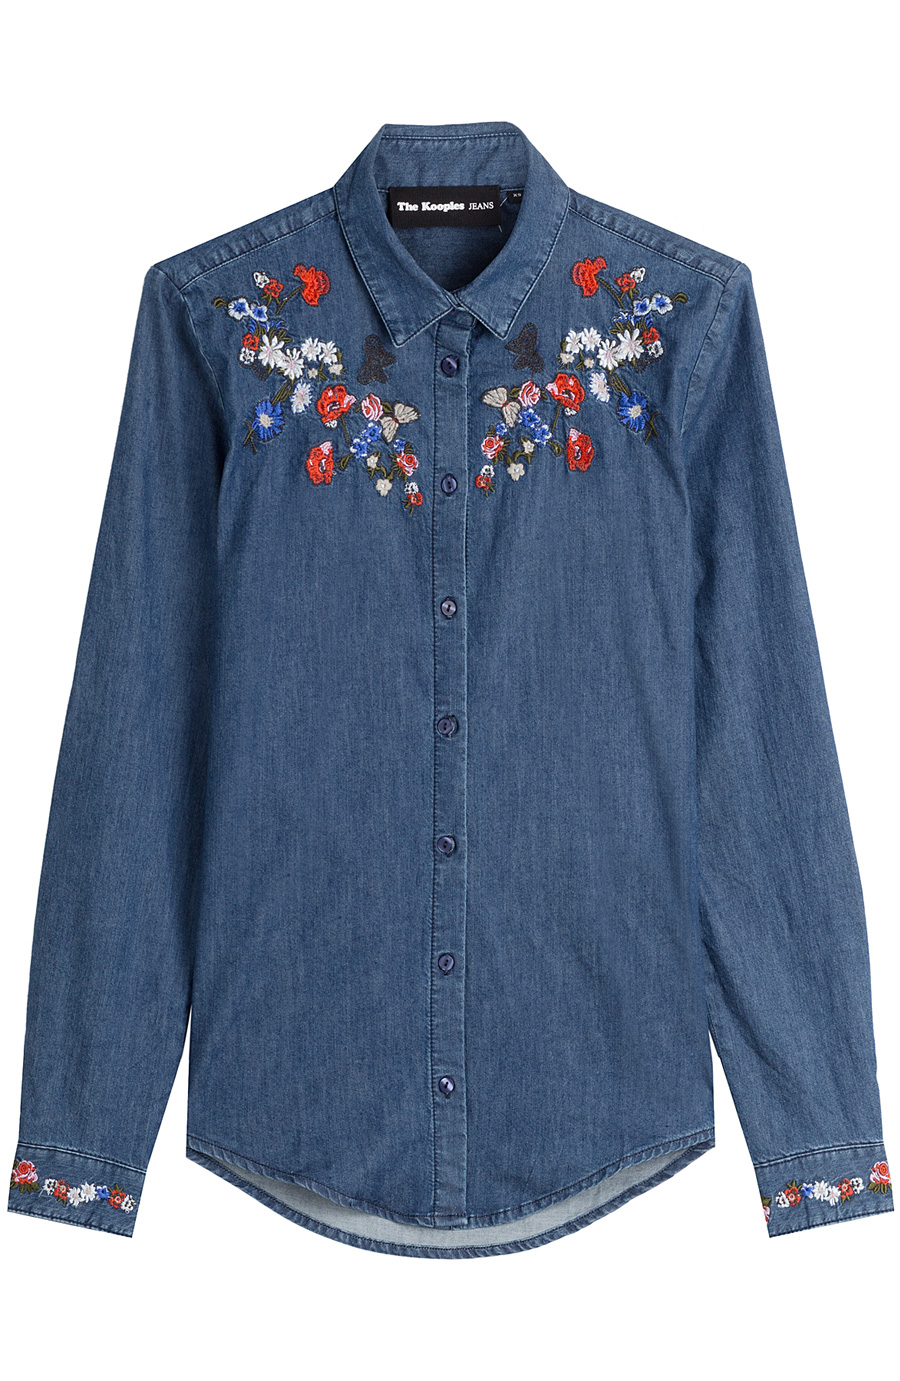 THE KOOPLES DENIM SHIRT WITH EMBROIDERY